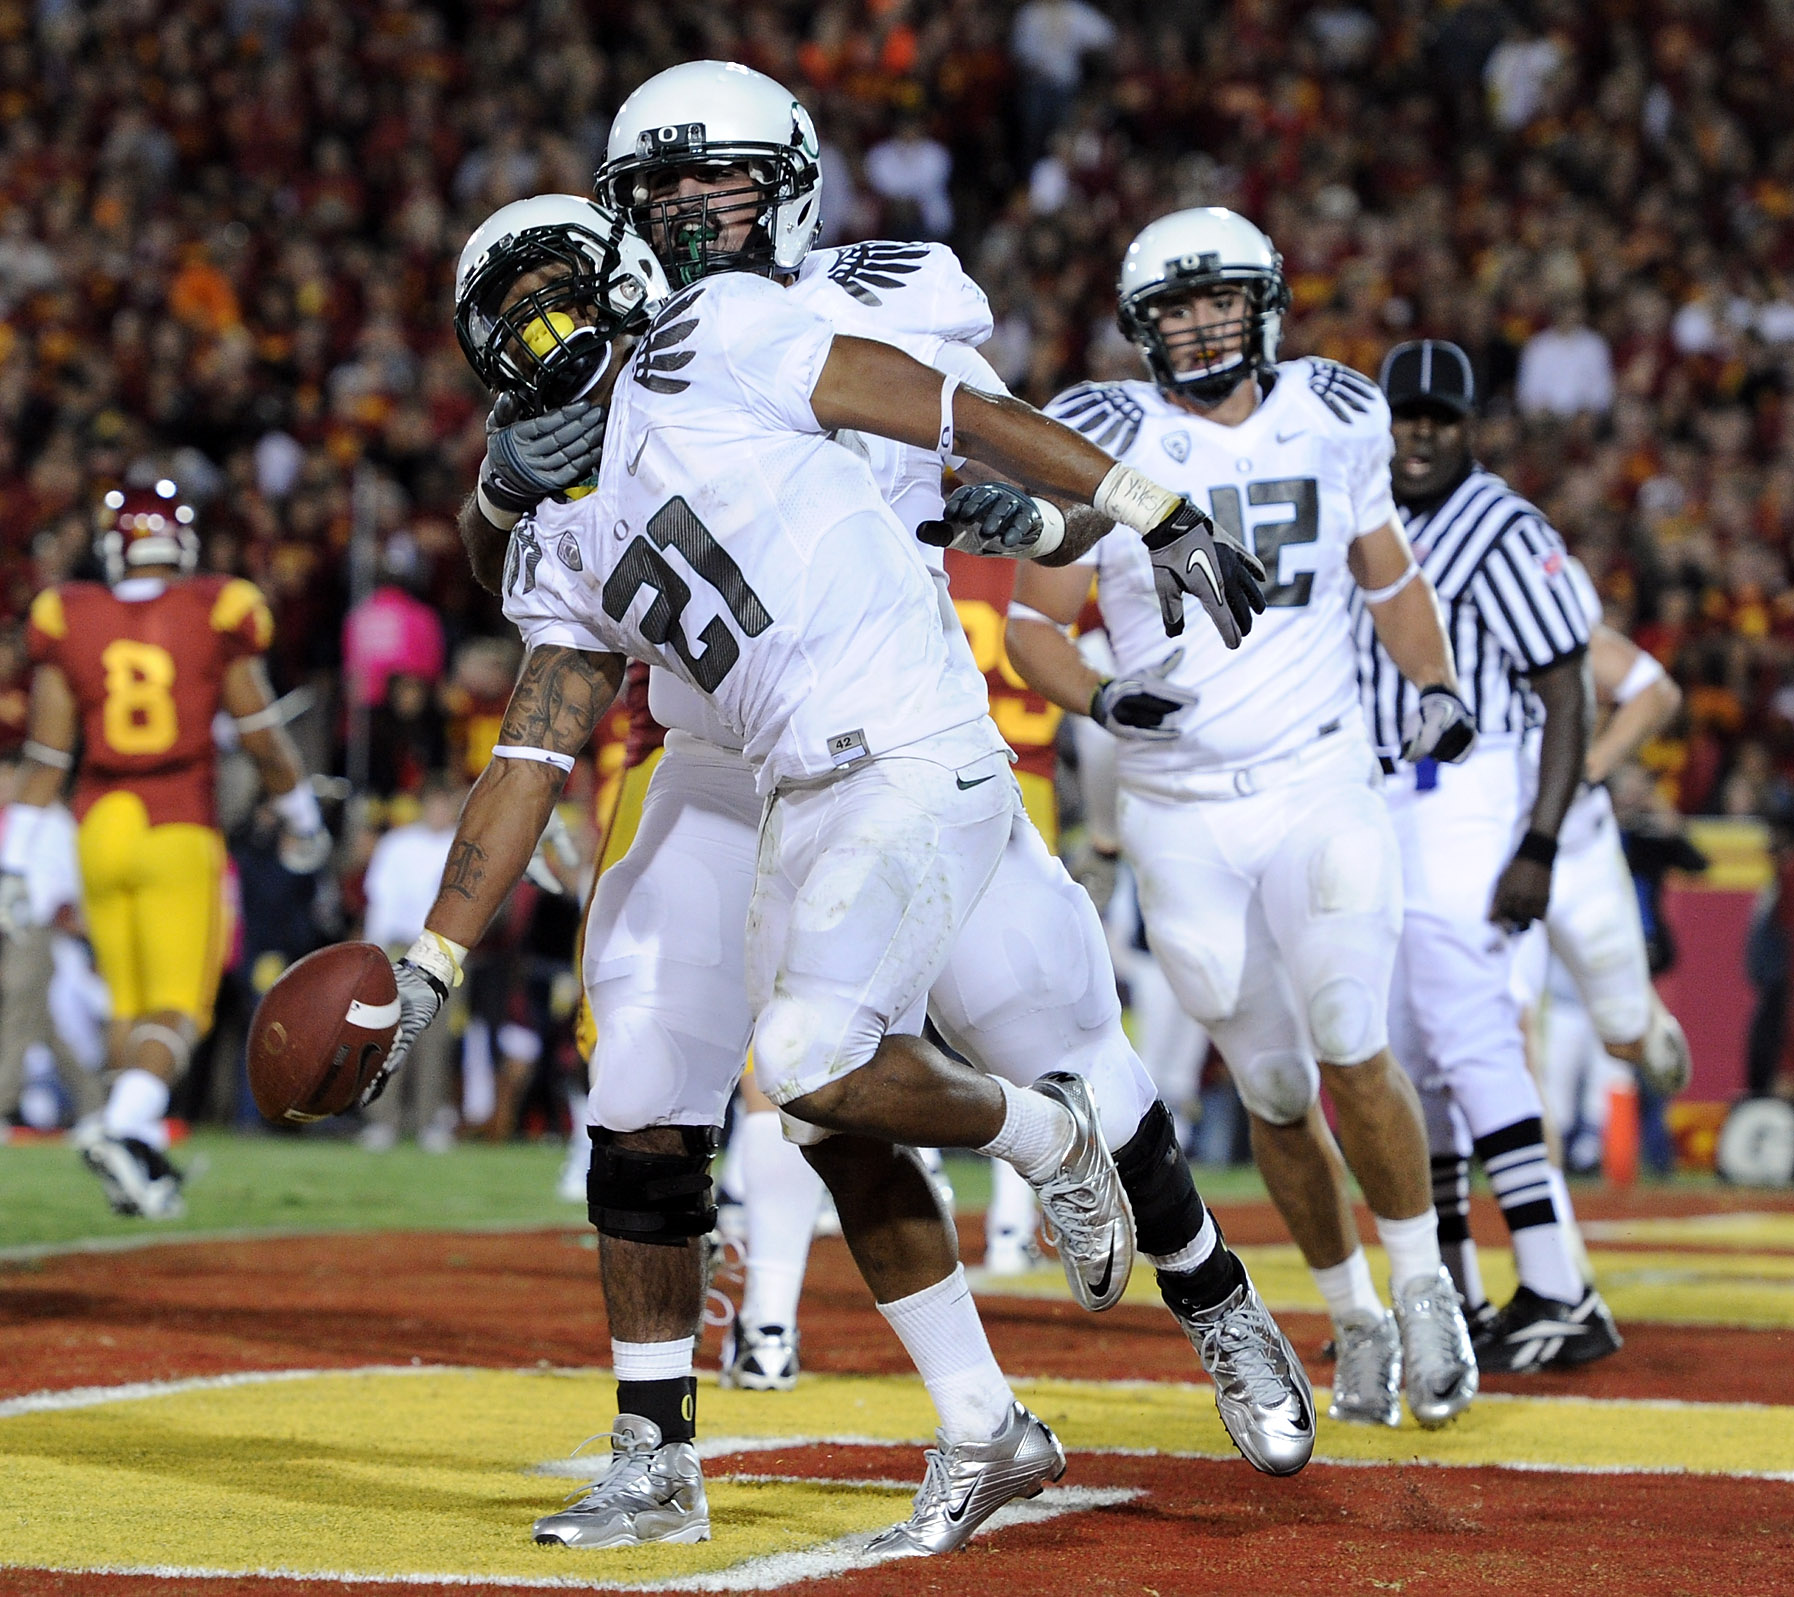 LOS ANGELES, CA - OCTOBER 30:  LaMichael James #21 of the Oregon Ducks celebrates his touchdown with Ramsen Golpashin #70 for a 43-32 lead over the USC Trojans during the fourth quarter at Los Angeles Memorial Coliseum on October 30, 2010 in Los Angeles,